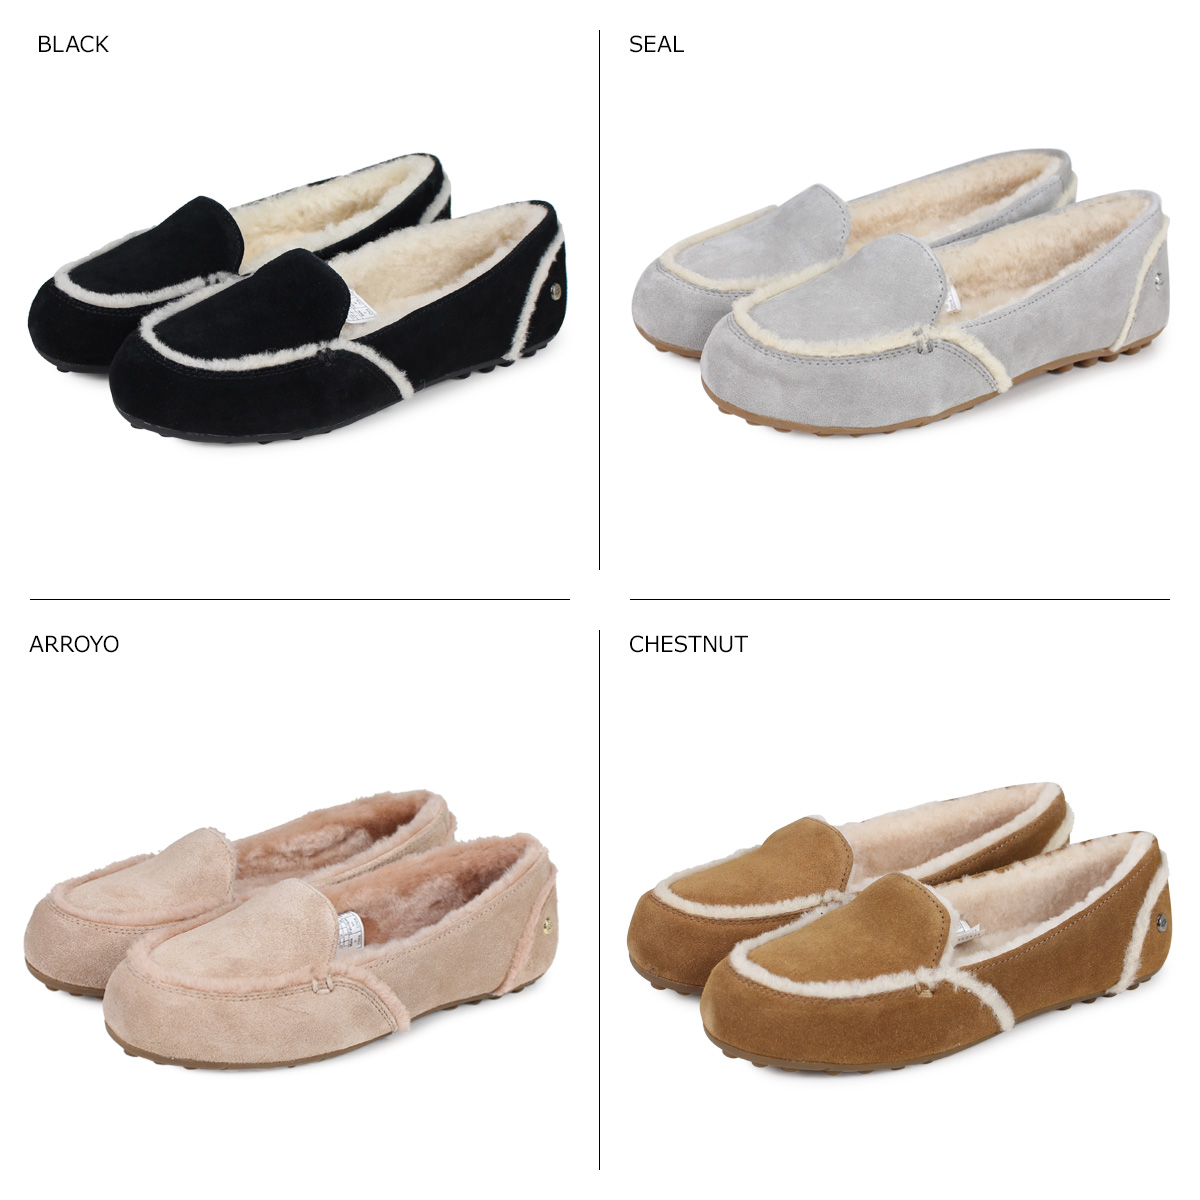 c75cd377207 アグ UGG slip-ons Haley Lady's mouton sheepskin WOMENS HAILEY black black  gray brown 1020029